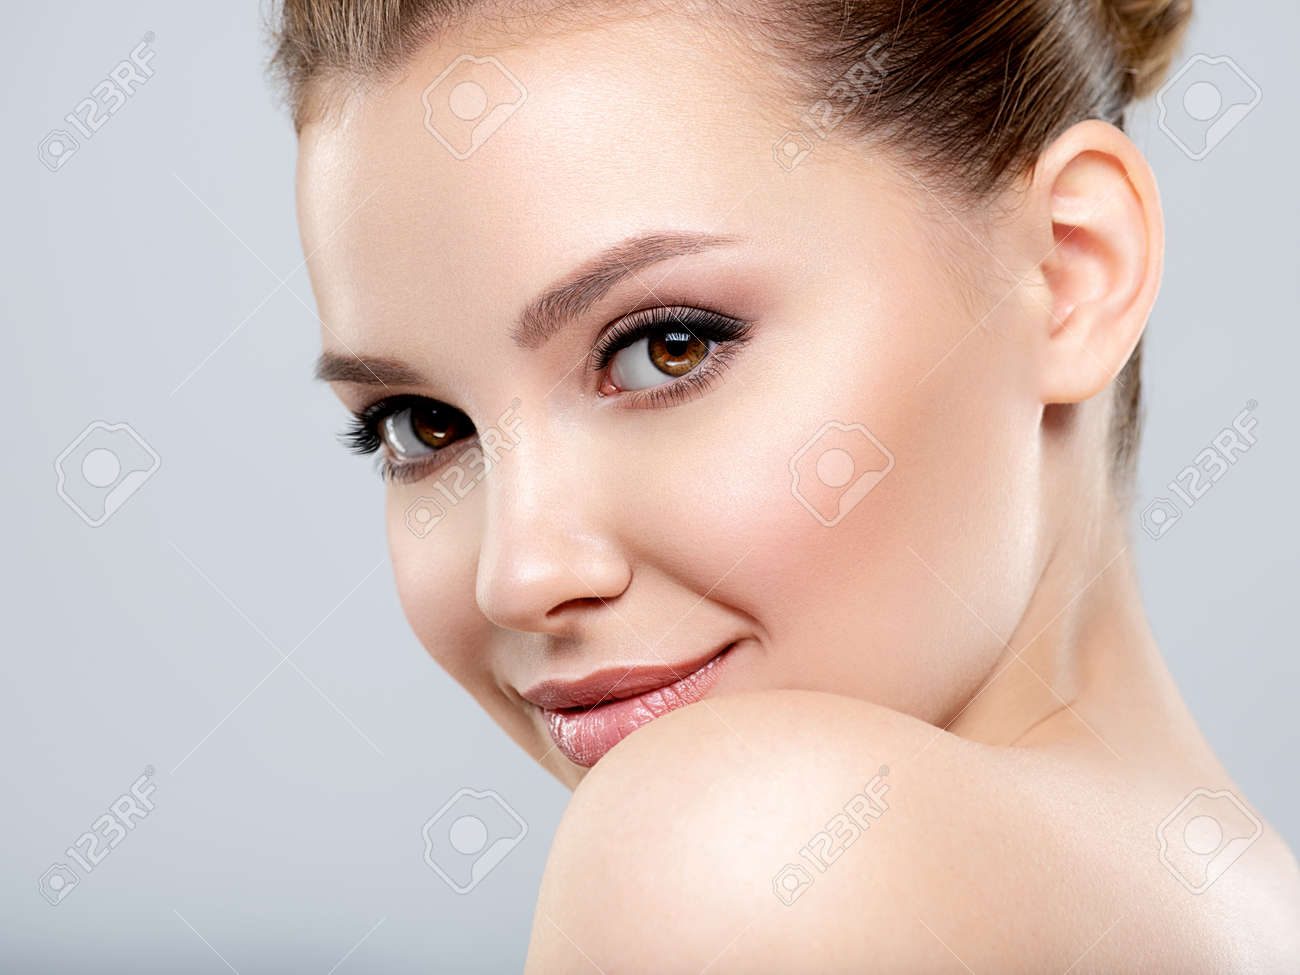 Beautiful face of young smiling woman with clean fresh skin - isolated. Young white happy woman with a clean skin. - 166251413